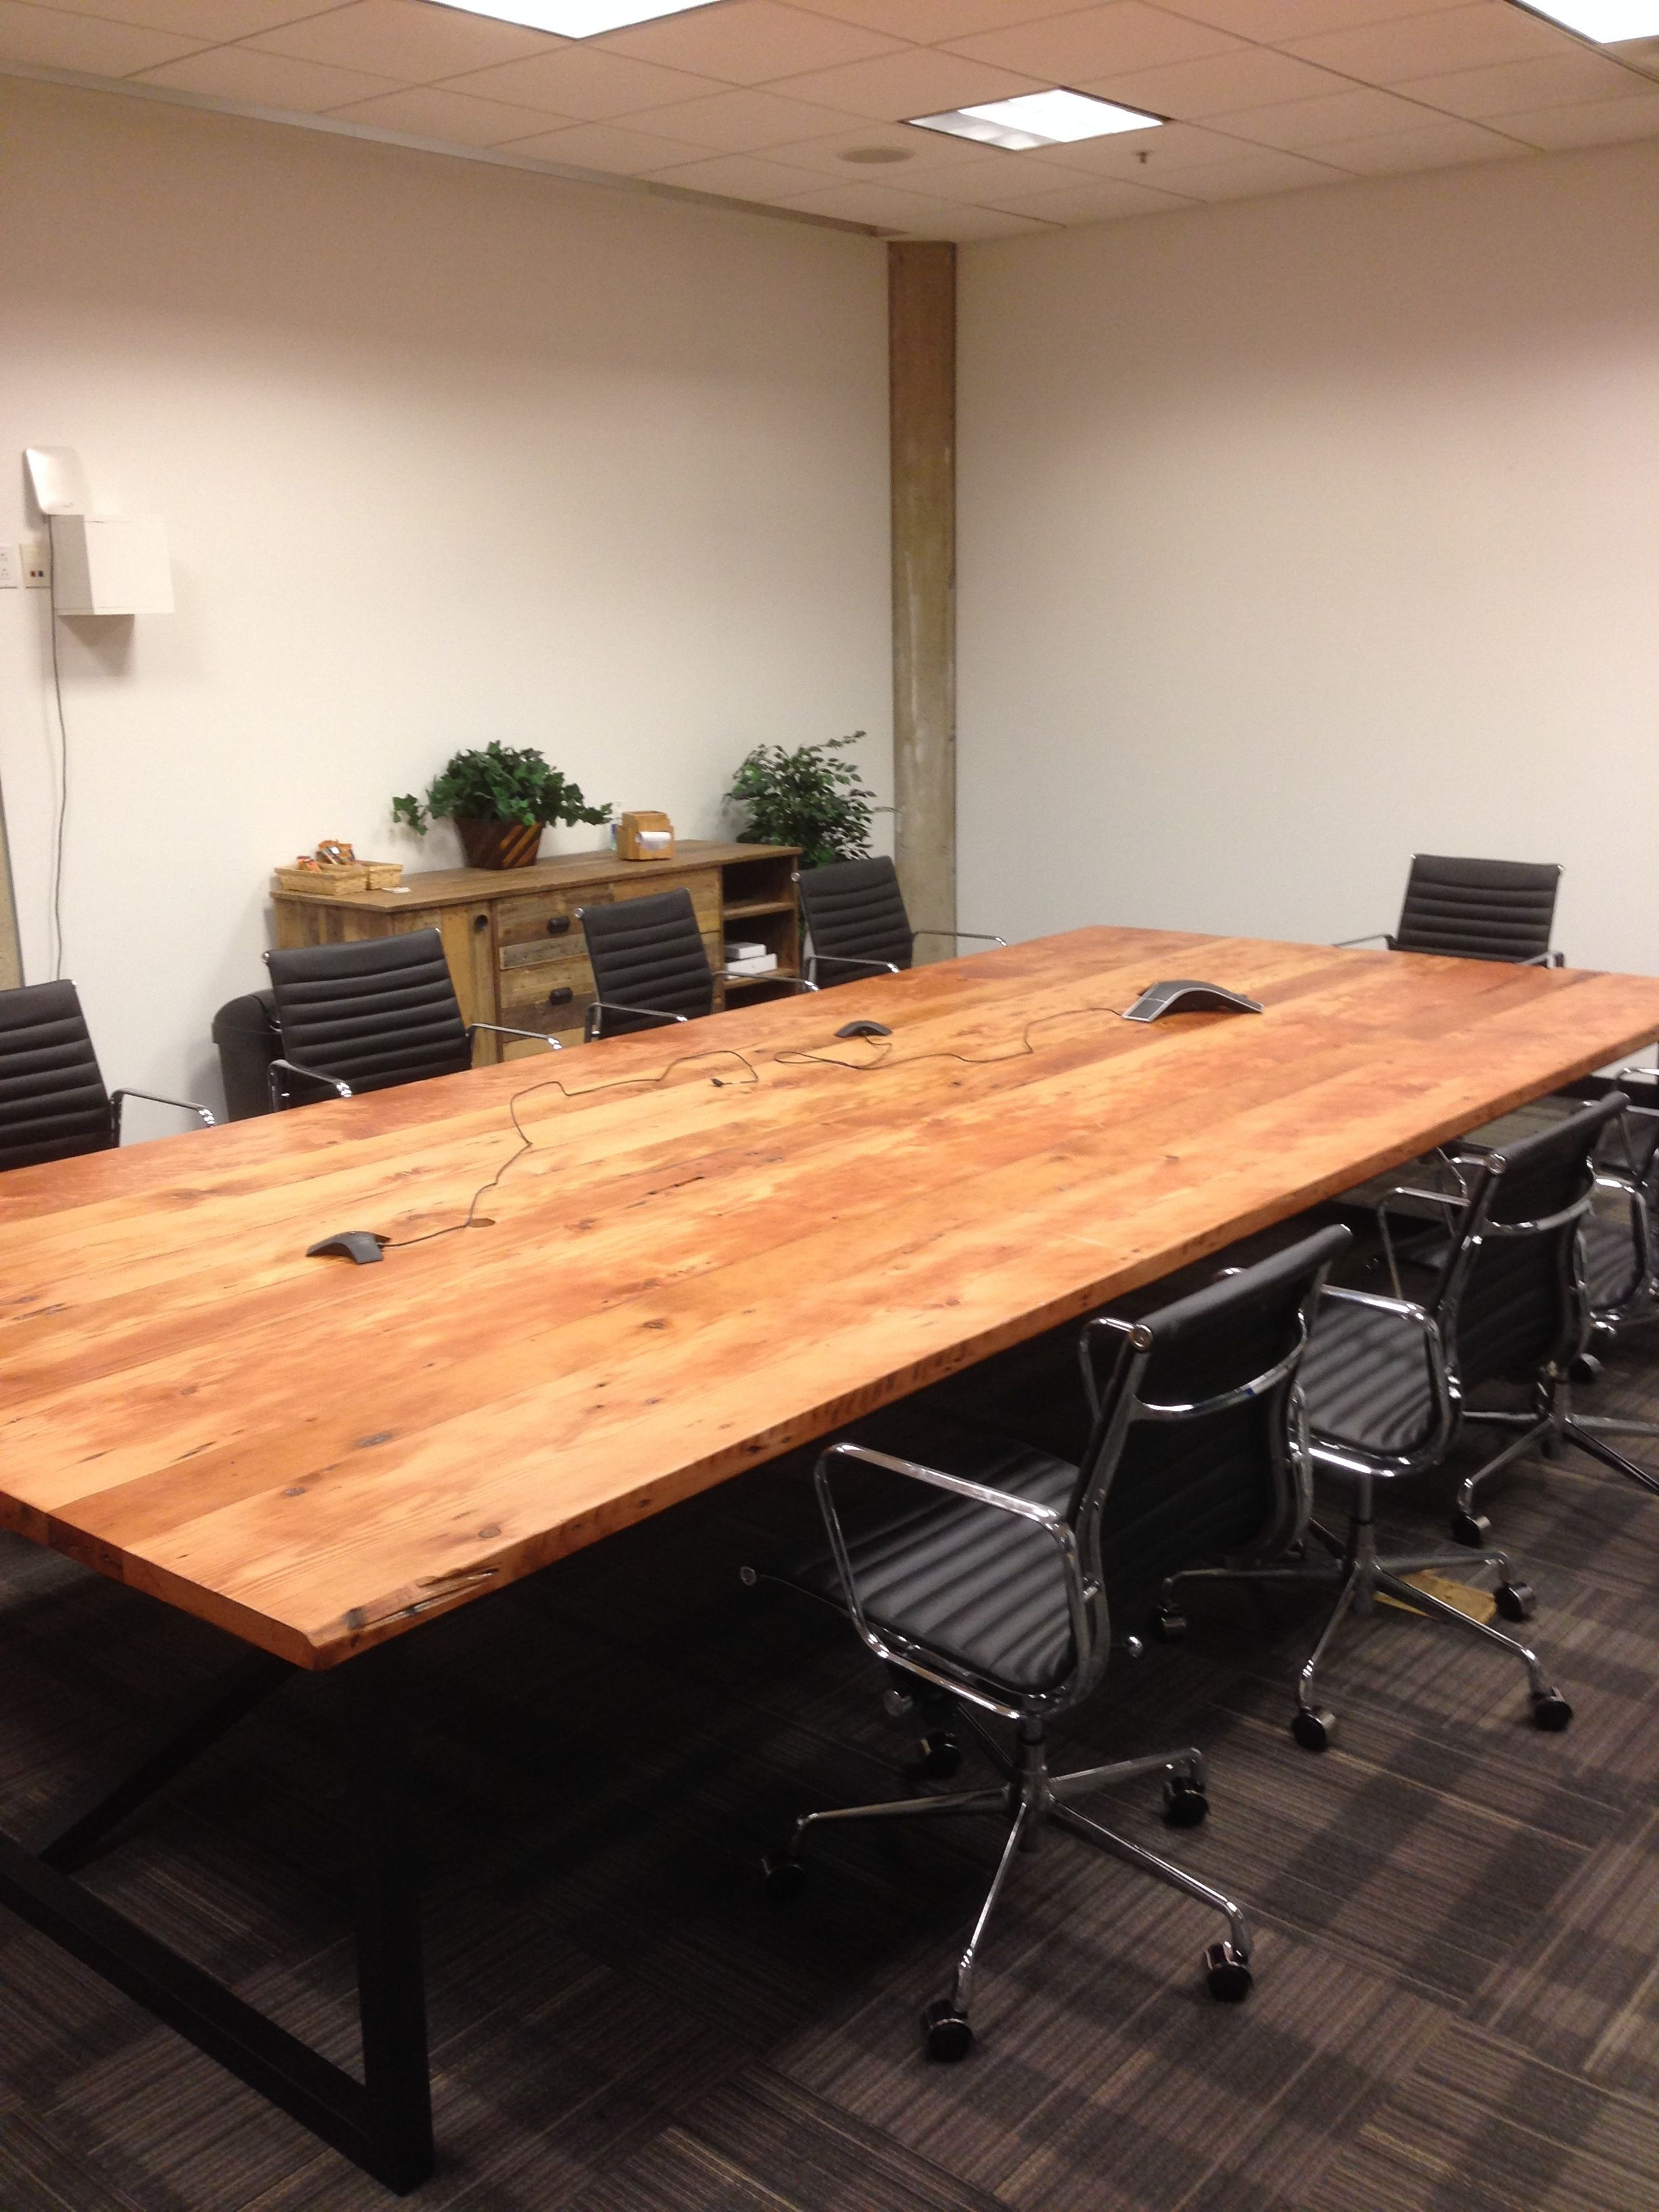 Ft X Ft Conference Table Hipmunk SF HQ Pinterest - 6ft conference table